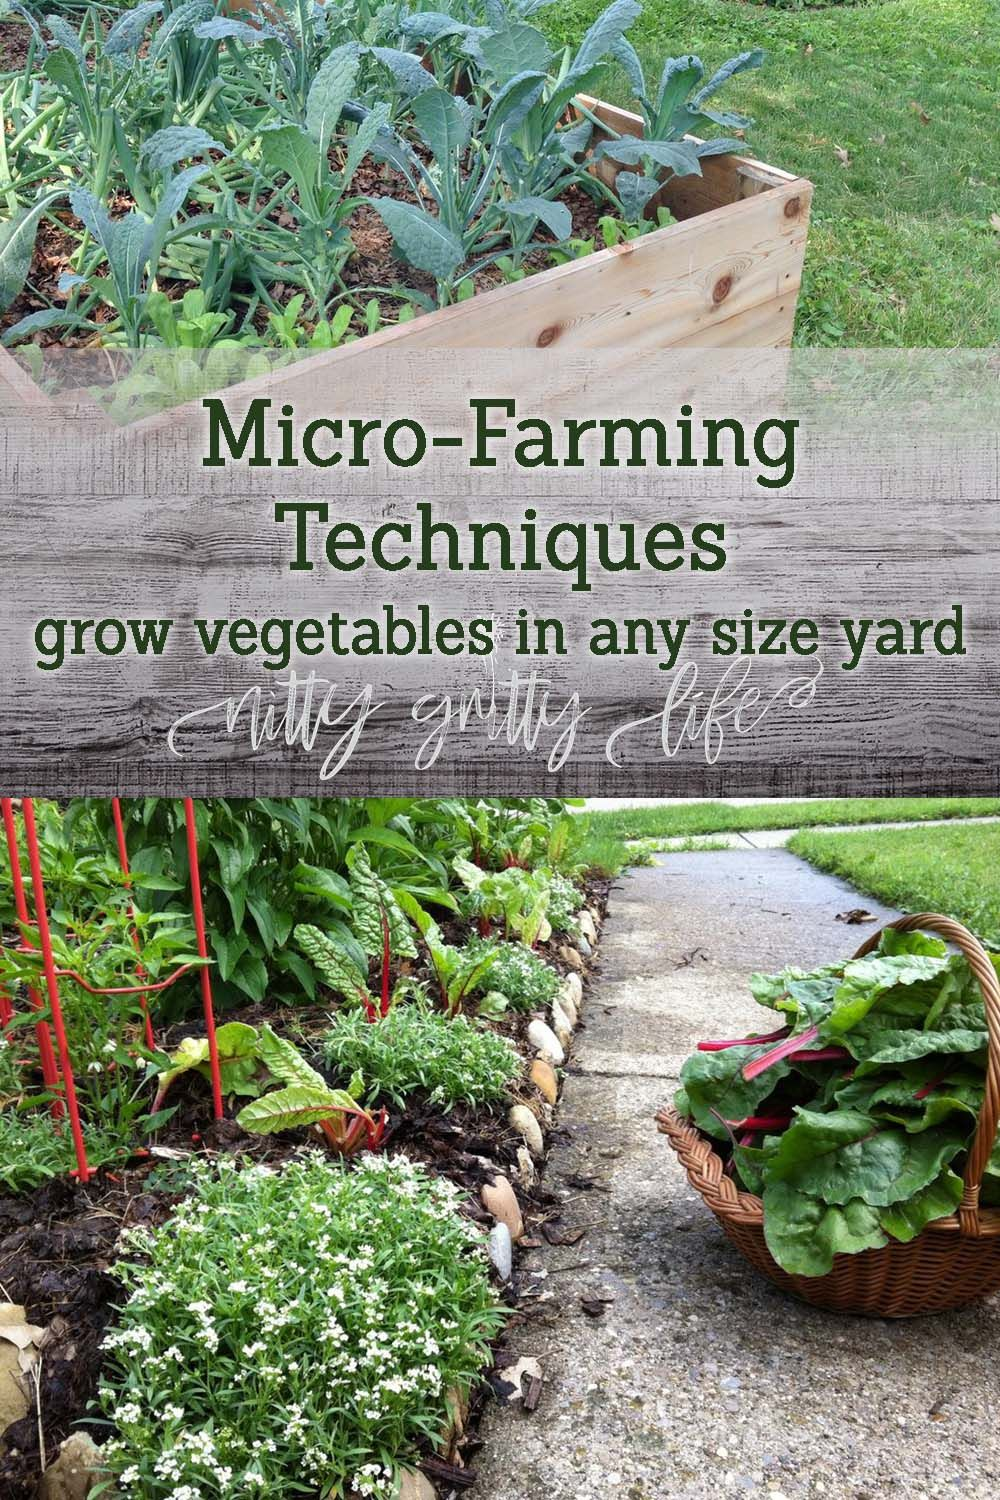 MicroFarming Techniques for Any Size Yard or Garden is part of Organic vegetable garden, Micro farm, Home vegetable garden, Farming techniques, Farm books, Wildflower garden - No matter the size of your yard or garden, microfarming techniques from The Suburban MicroFarm book can offer productive solutions to maximize your efforts!